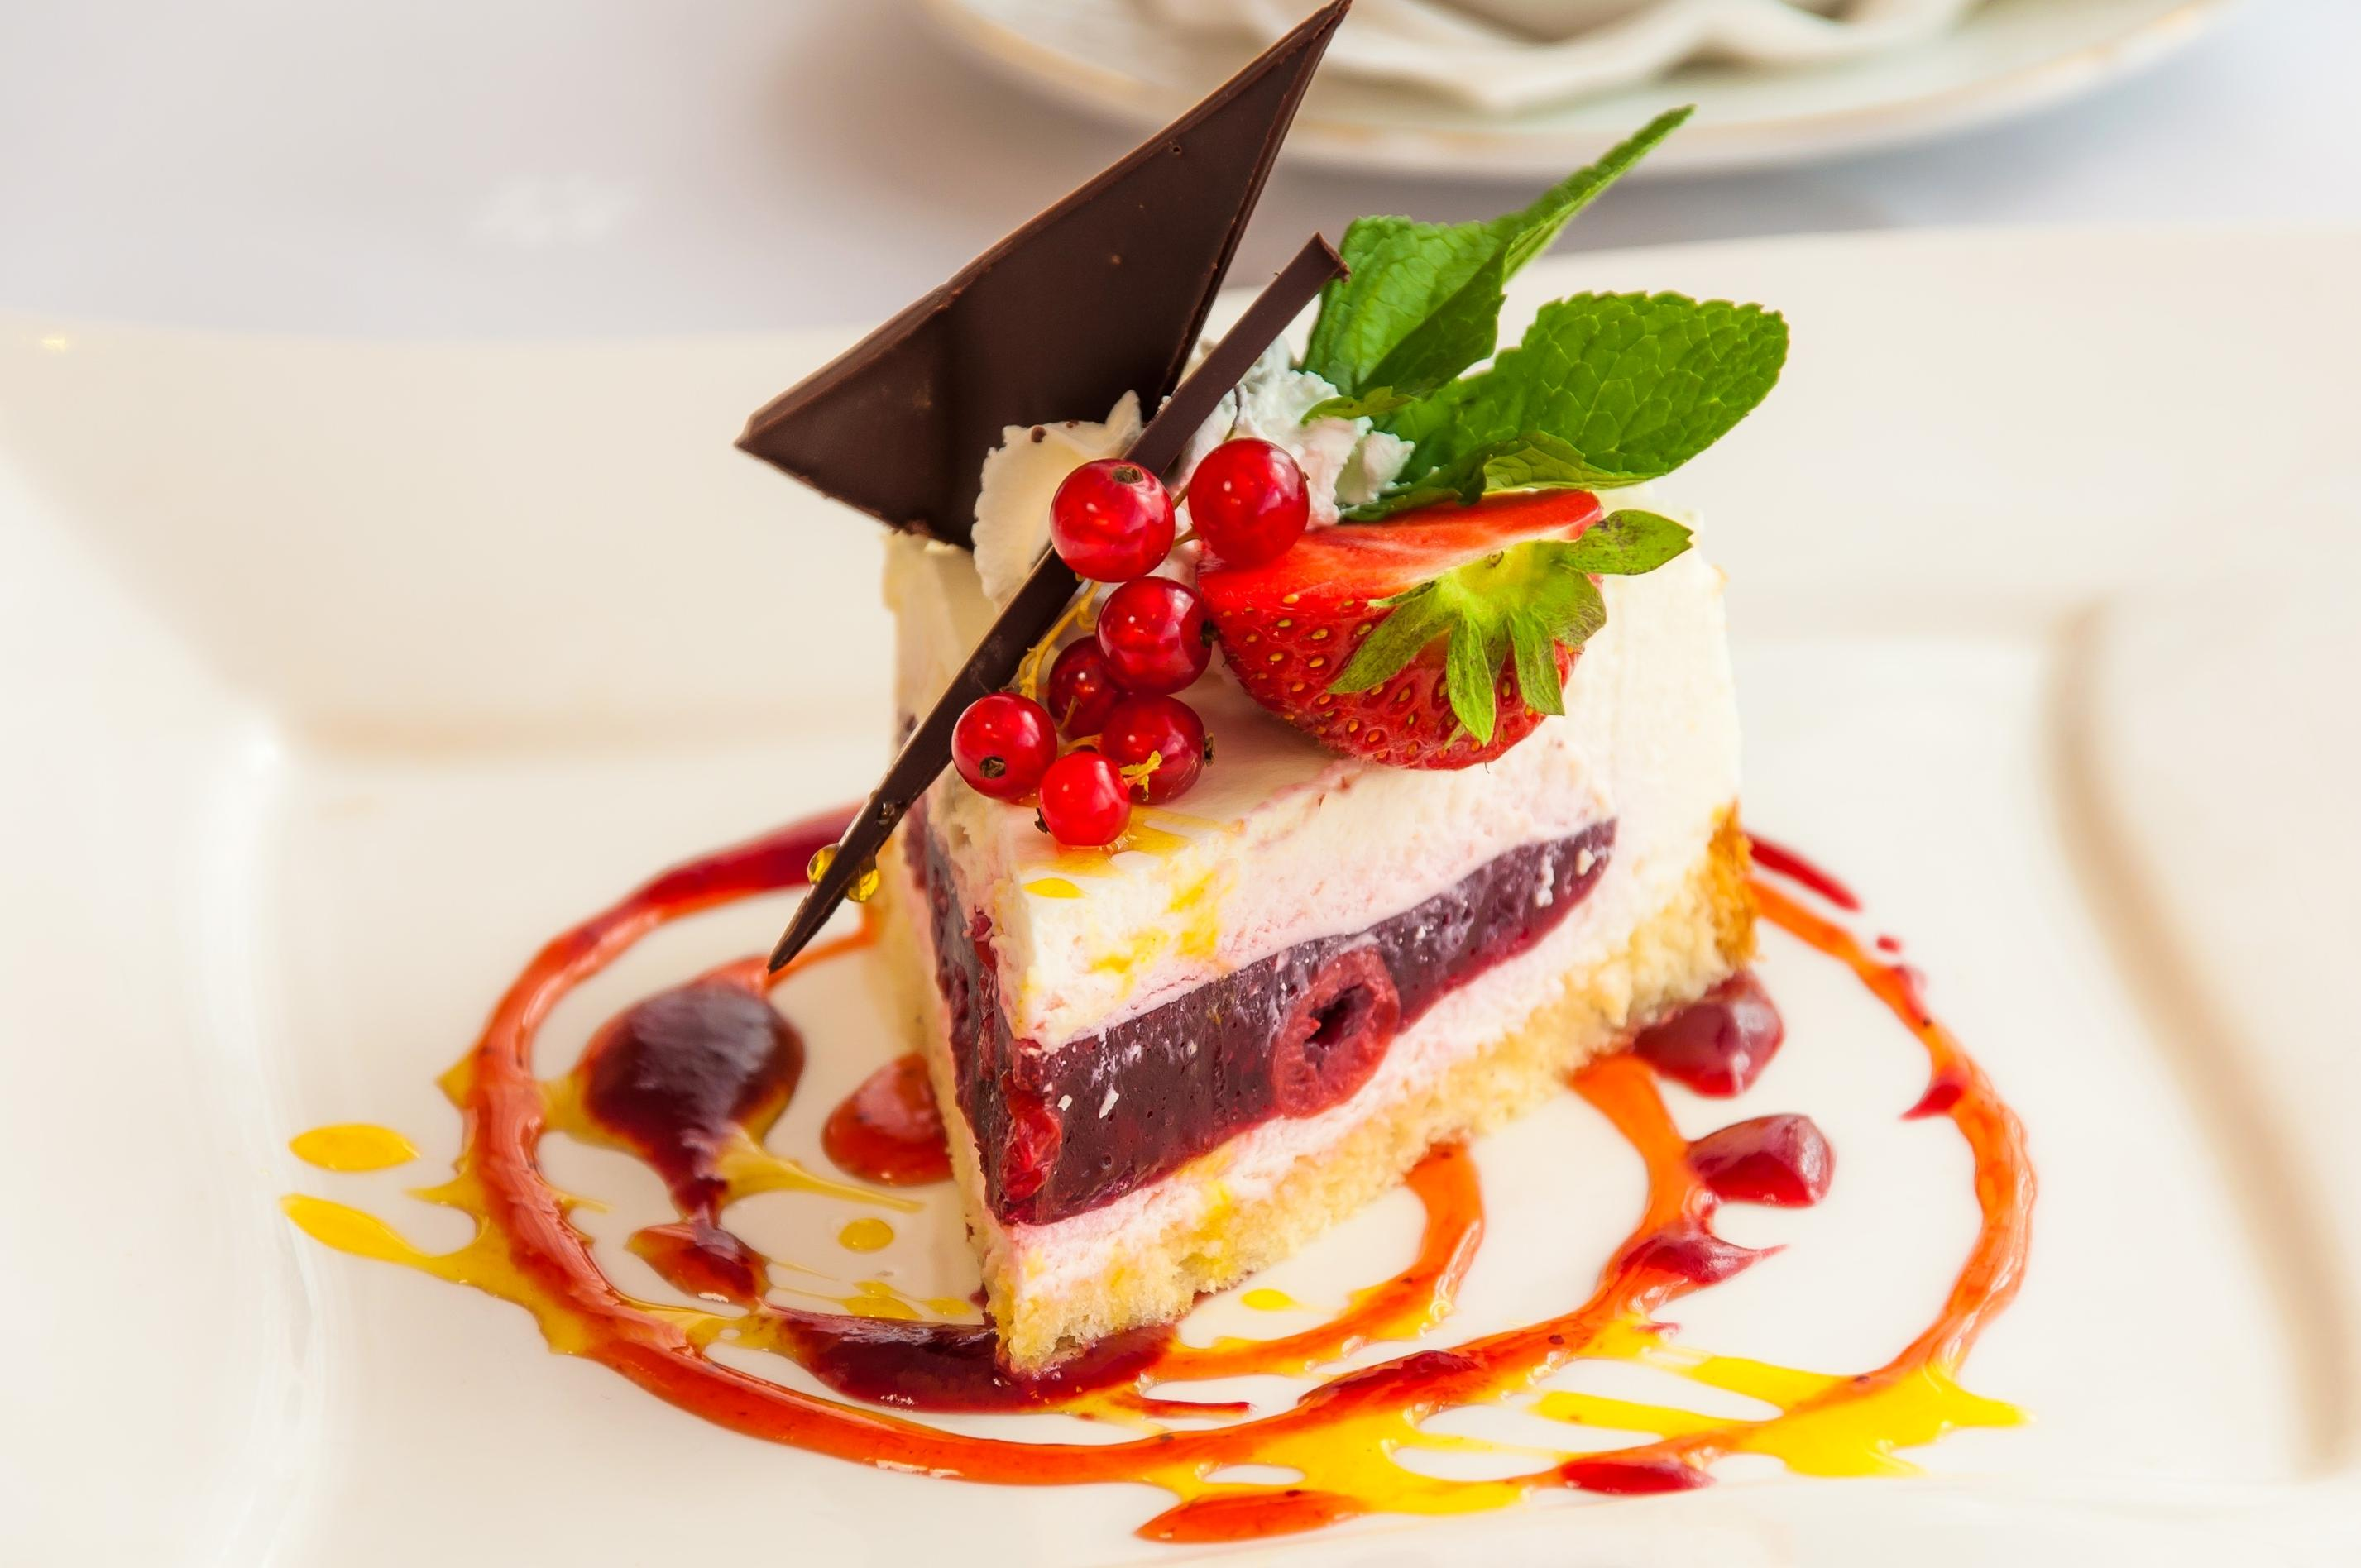 Restaurant Mint Free Picture: Chocolate, Cake, Sweet, Cream, Delicious